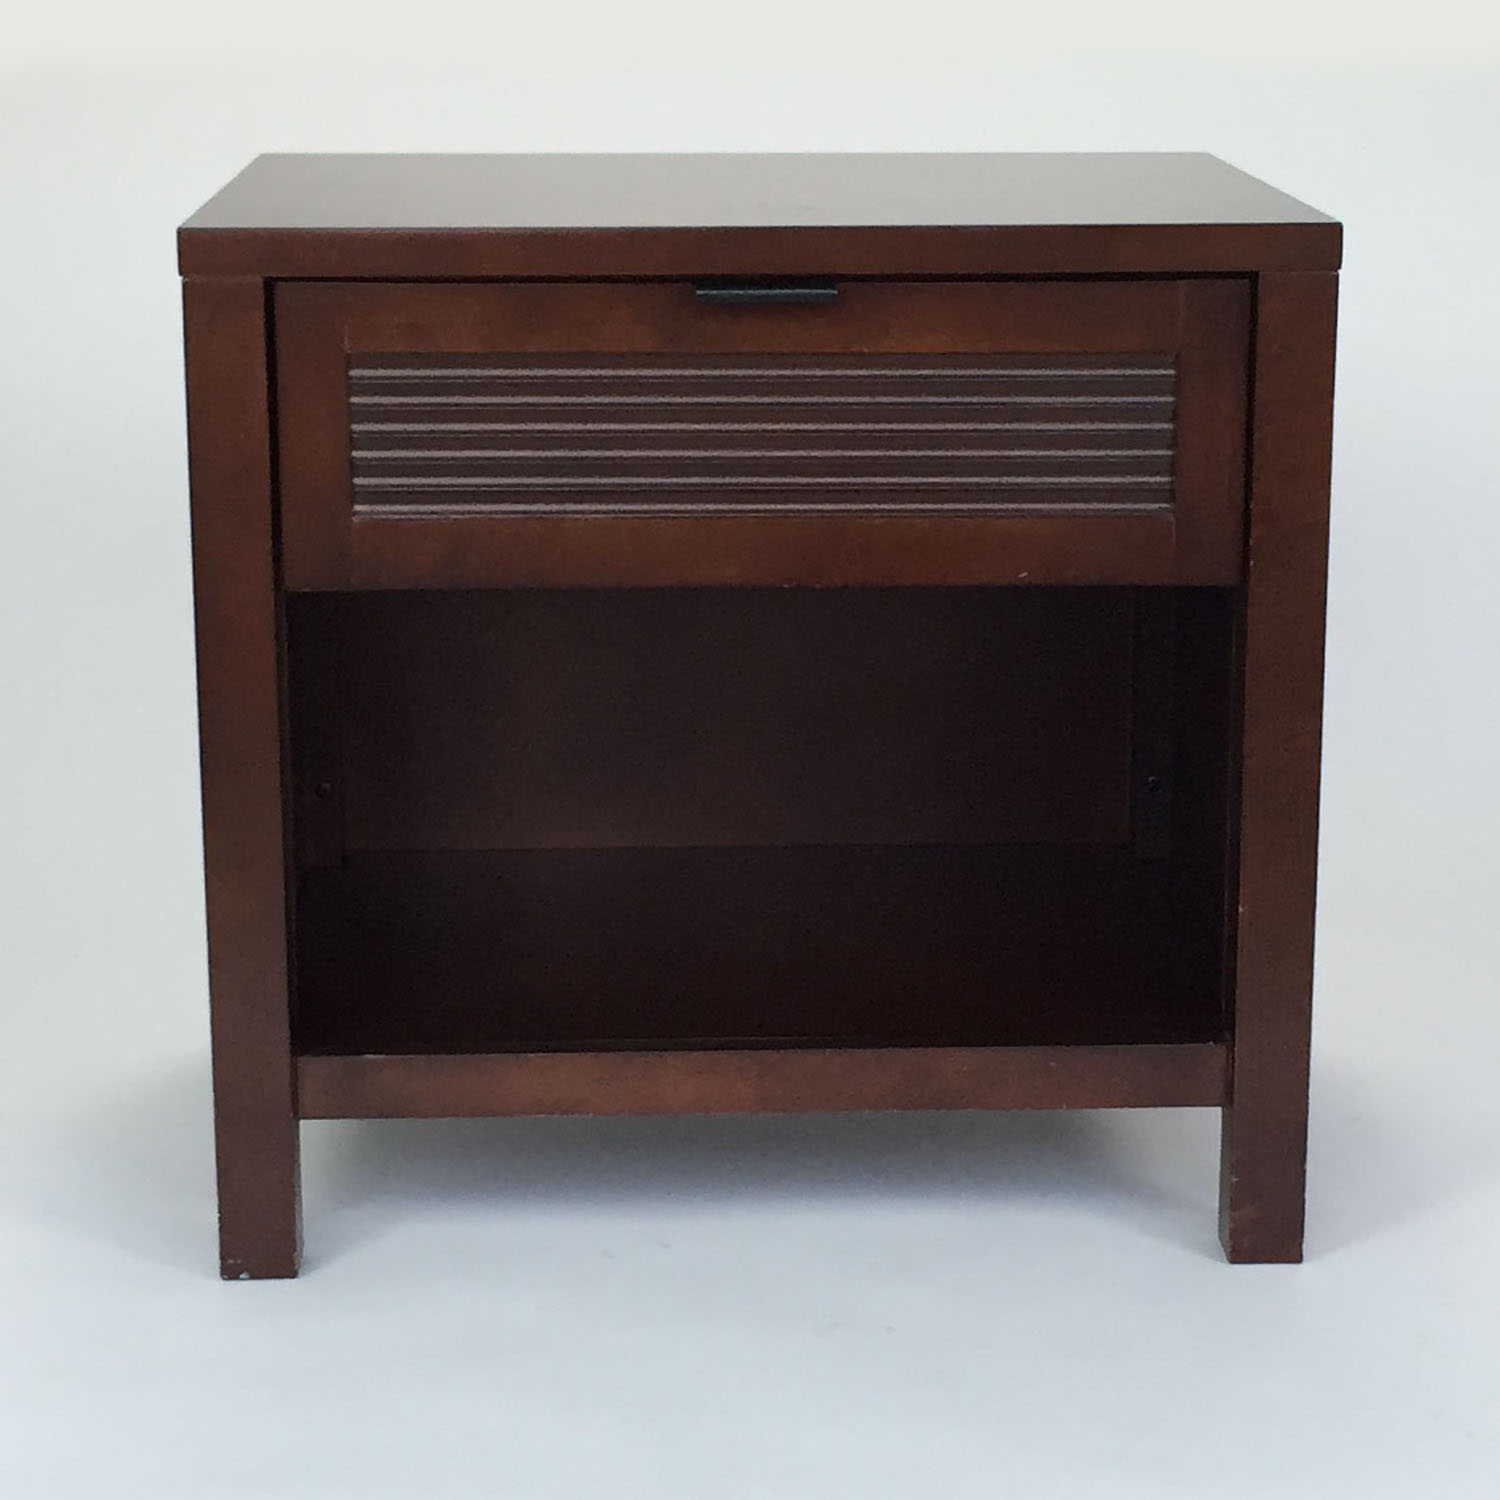 81 Off Crate Barrel Crate And Barrel Nightstand Tables